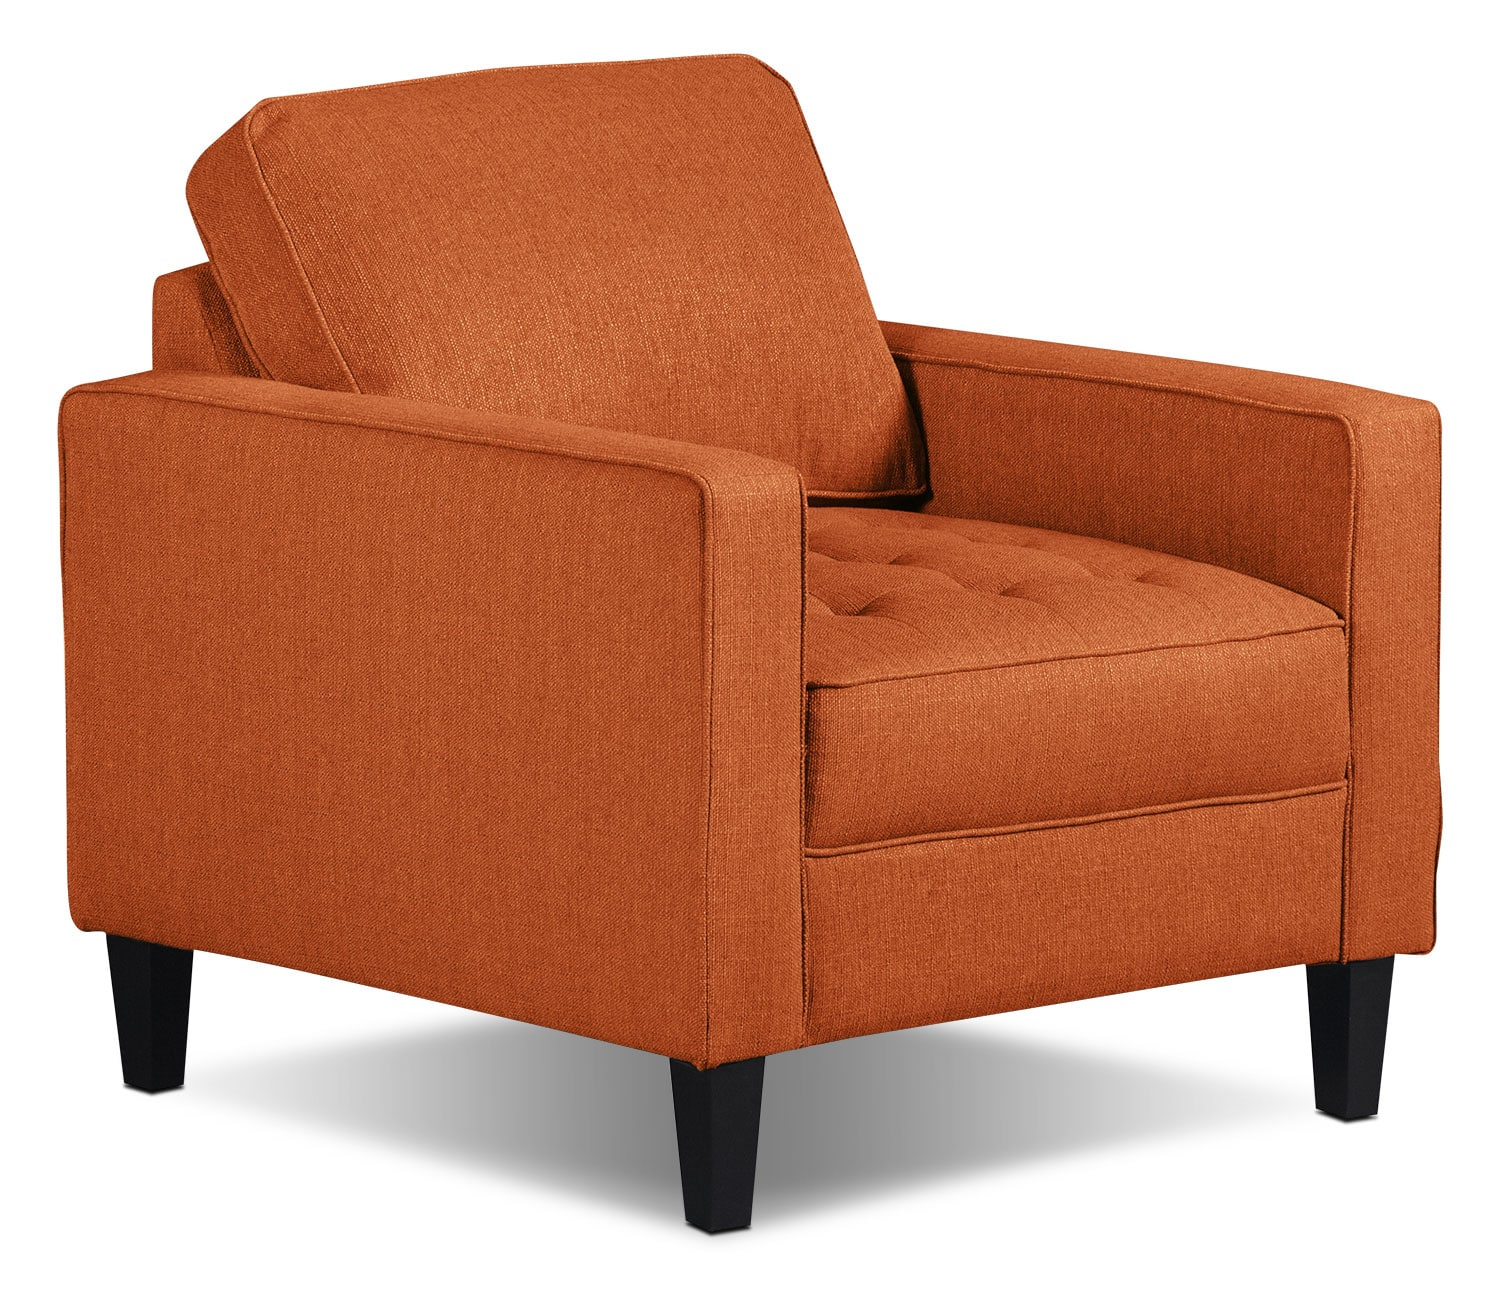 Paris Linen-Look Fabric Chair – Tangerine